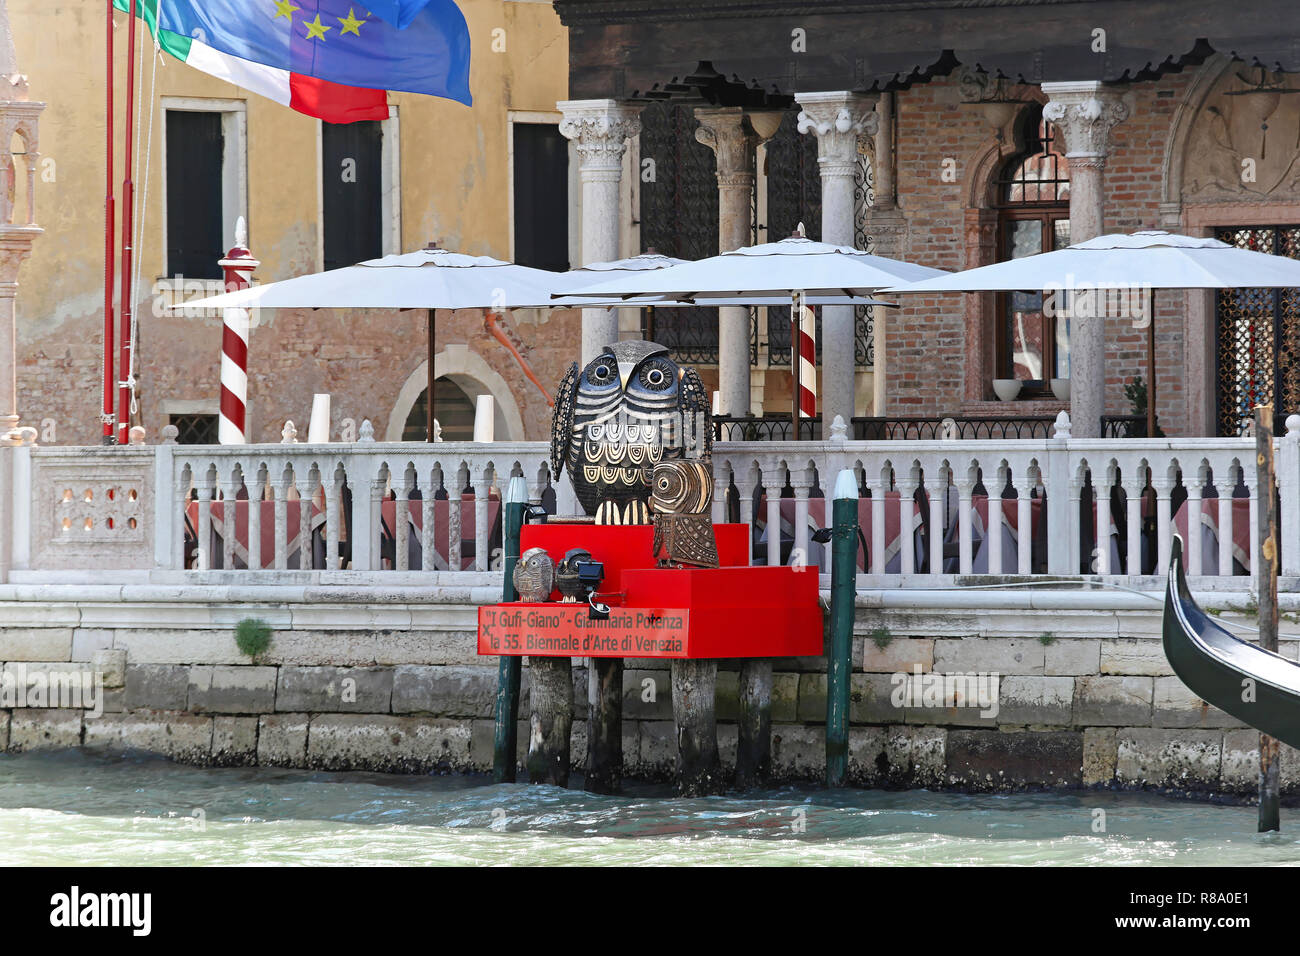 VENICE, ITALY - JULY 08: La Biennale in Venice on JULY 08, 2013. Bronze owls statues for 55th International Art Exhibition in Venice, Italy. - Stock Image